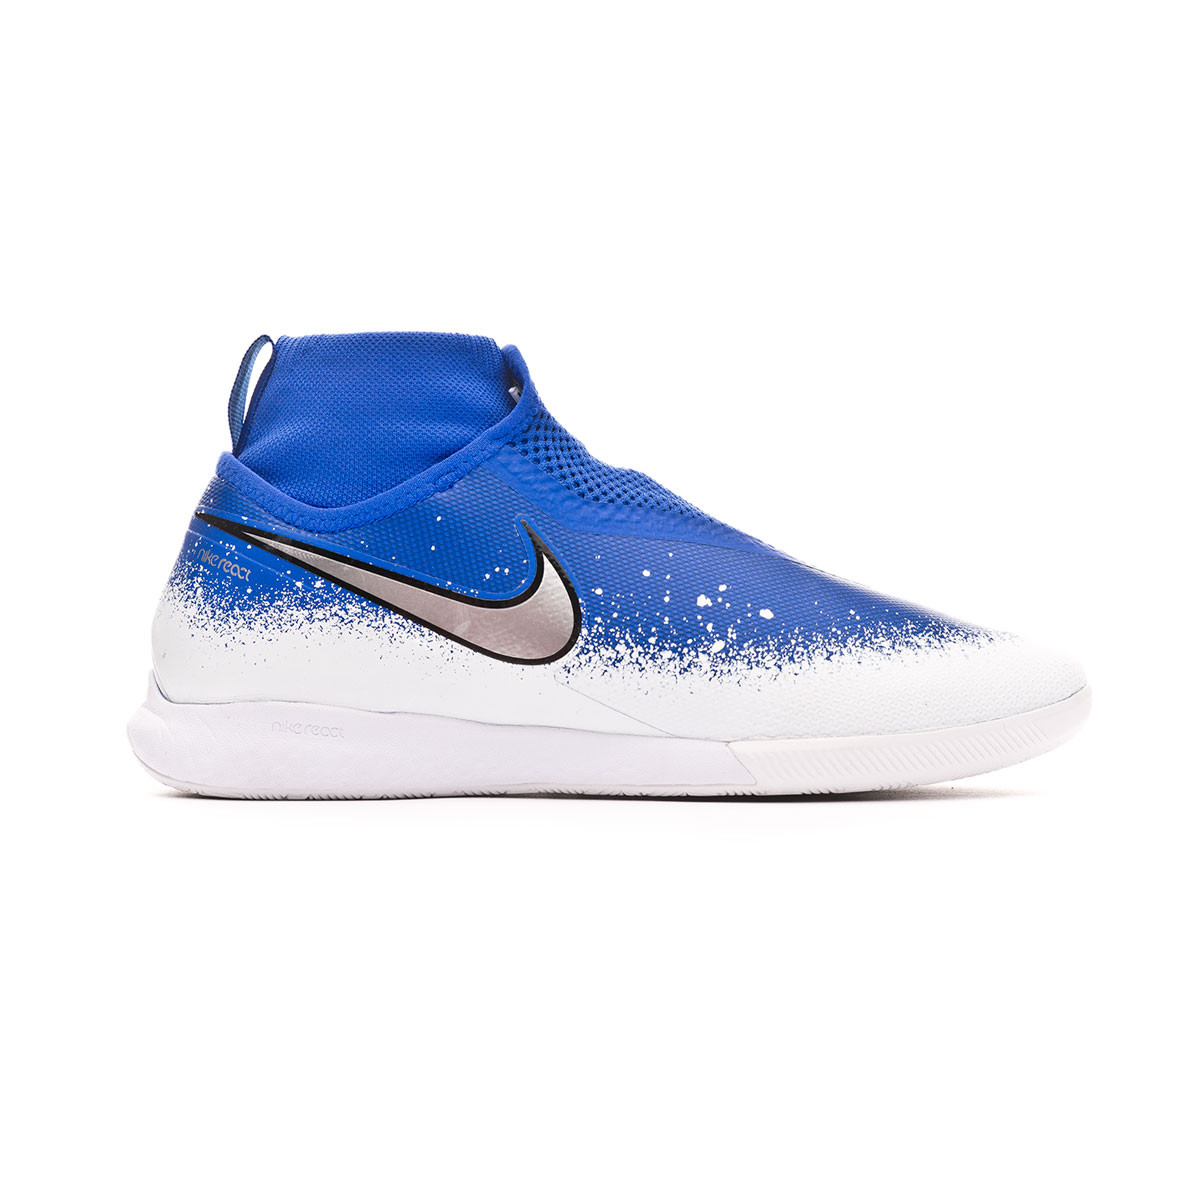 Presa laberinto capa  Futsal Boot Nike React Phantom Vision Pro DF IC Racer blue-Chrome-White -  Football store Fútbol Emotion